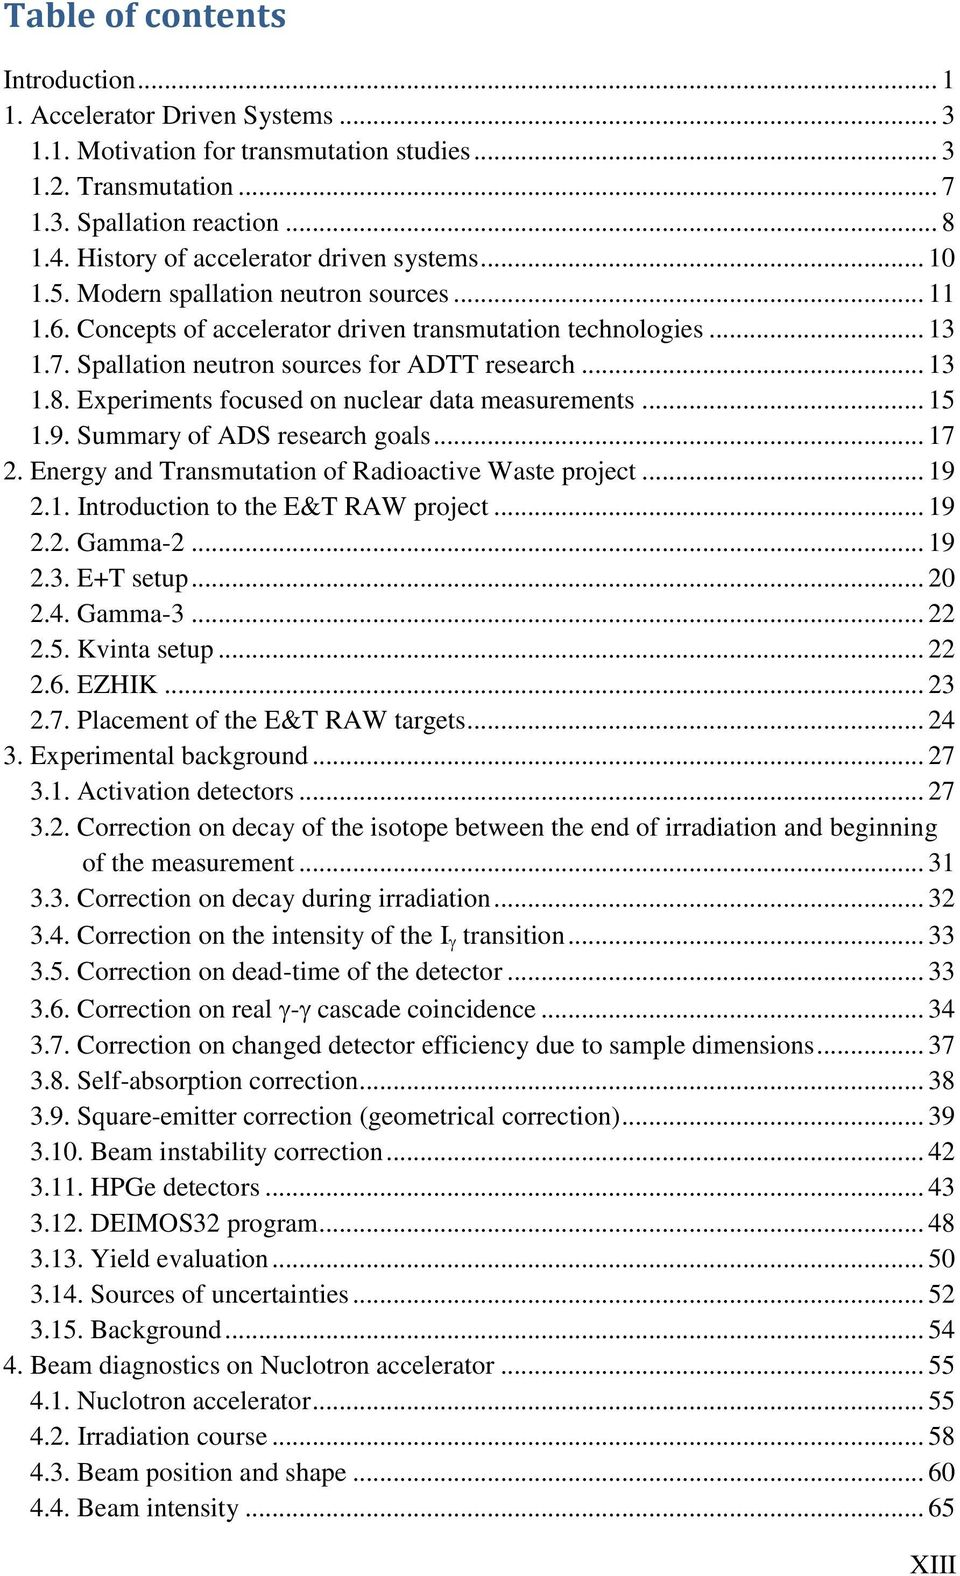 Spallation neutron sources for ADTT research... 13 1.8. Experiments focused on nuclear data measurements... 15 1.9. Summary of ADS research goals... 17 2.